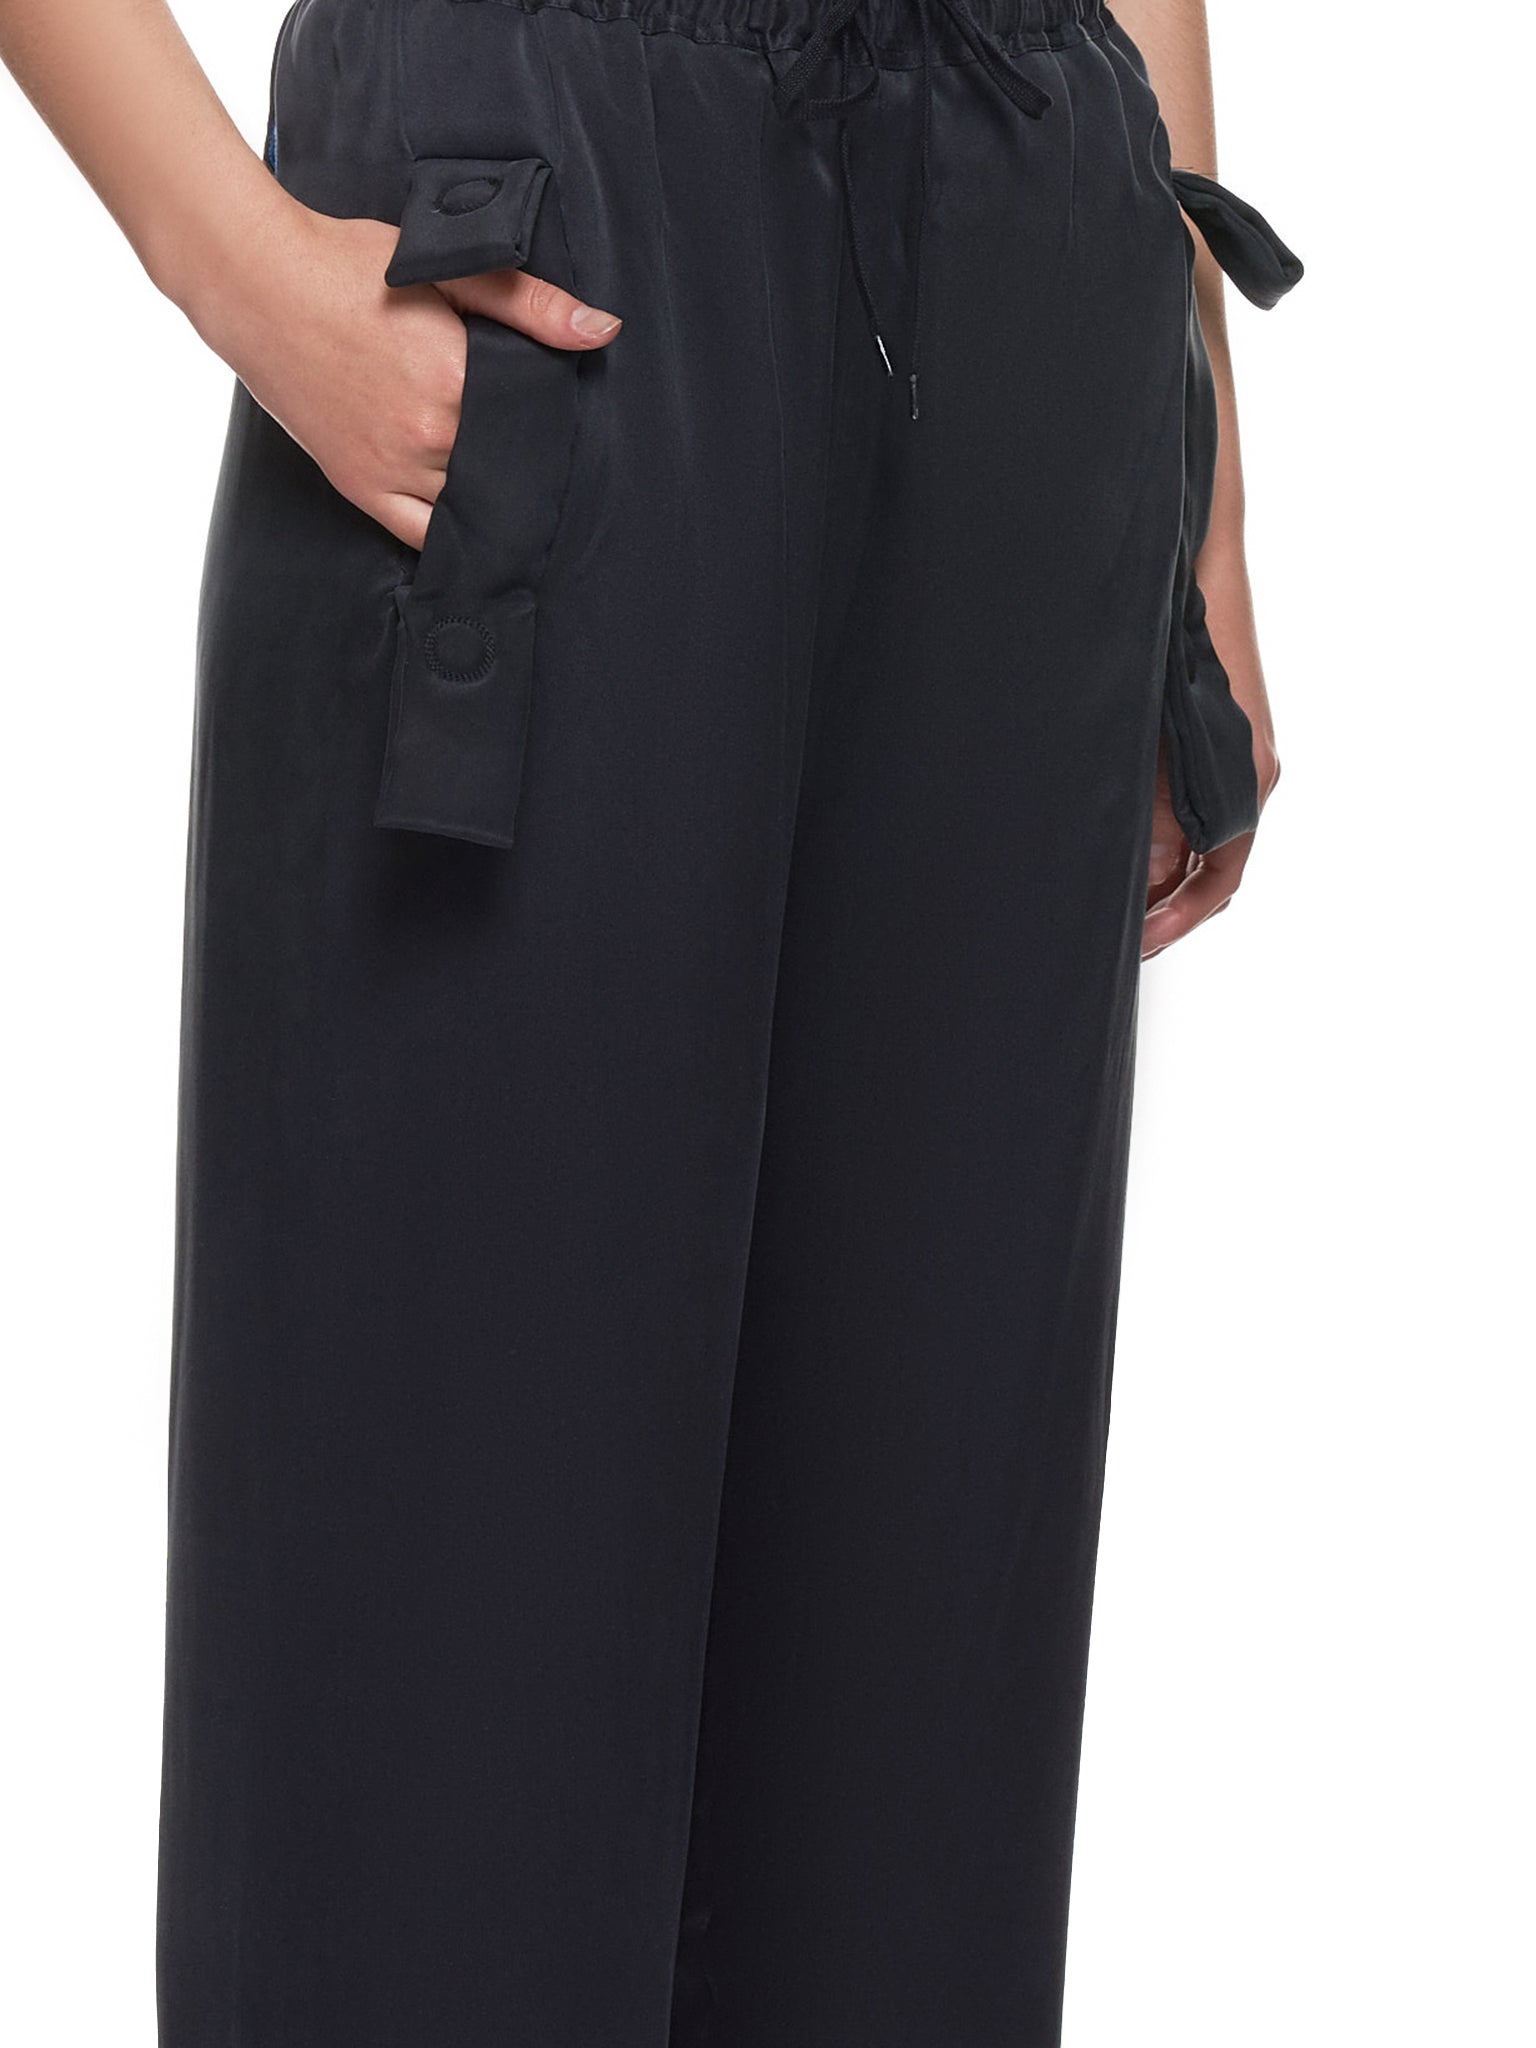 Bernhard Willhelm Pants - Hlorenzo Detail 2